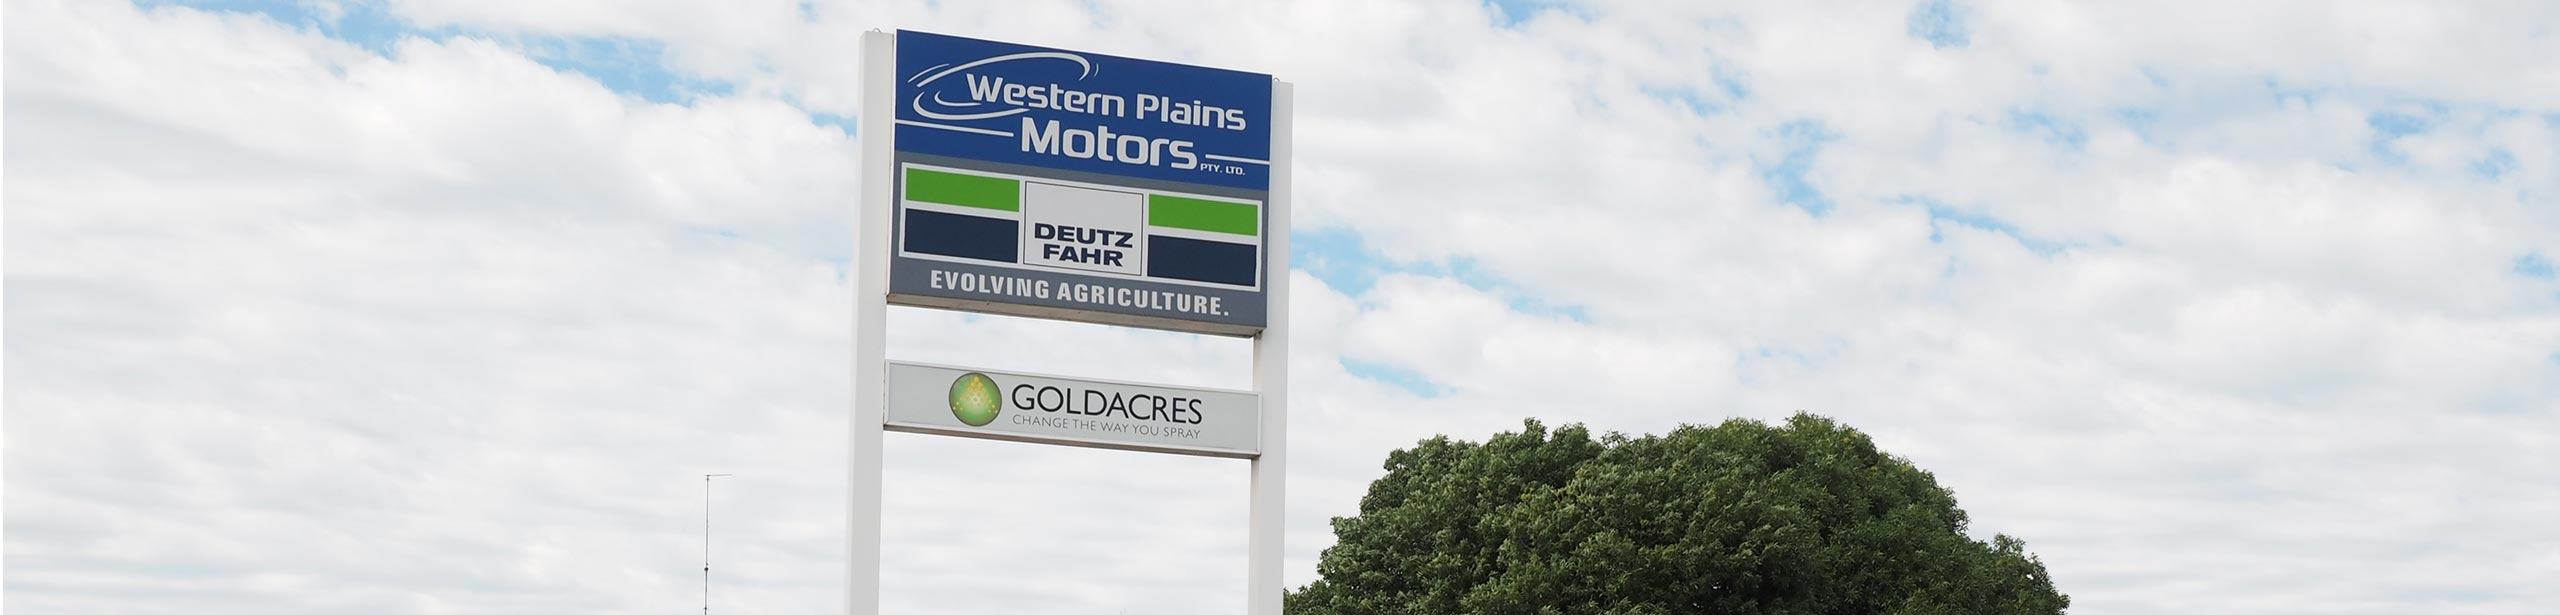 Western Plains Motors Contact Us